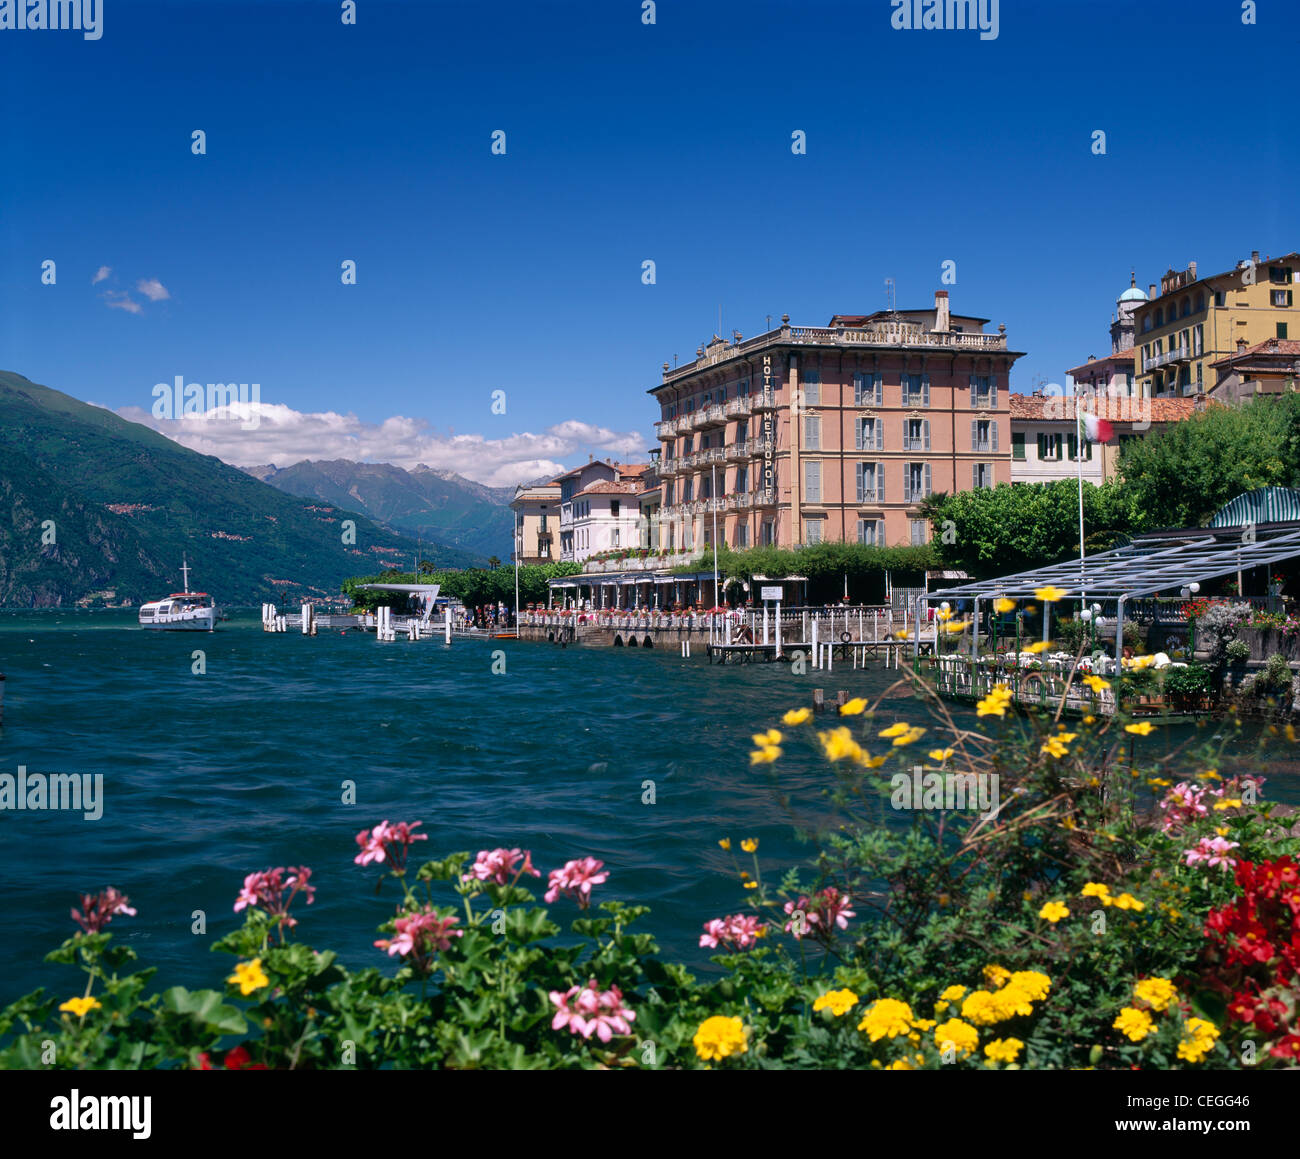 The Hotel Metropole at Bellagio and Lake Como, Lombardy, Italy. - Stock Image